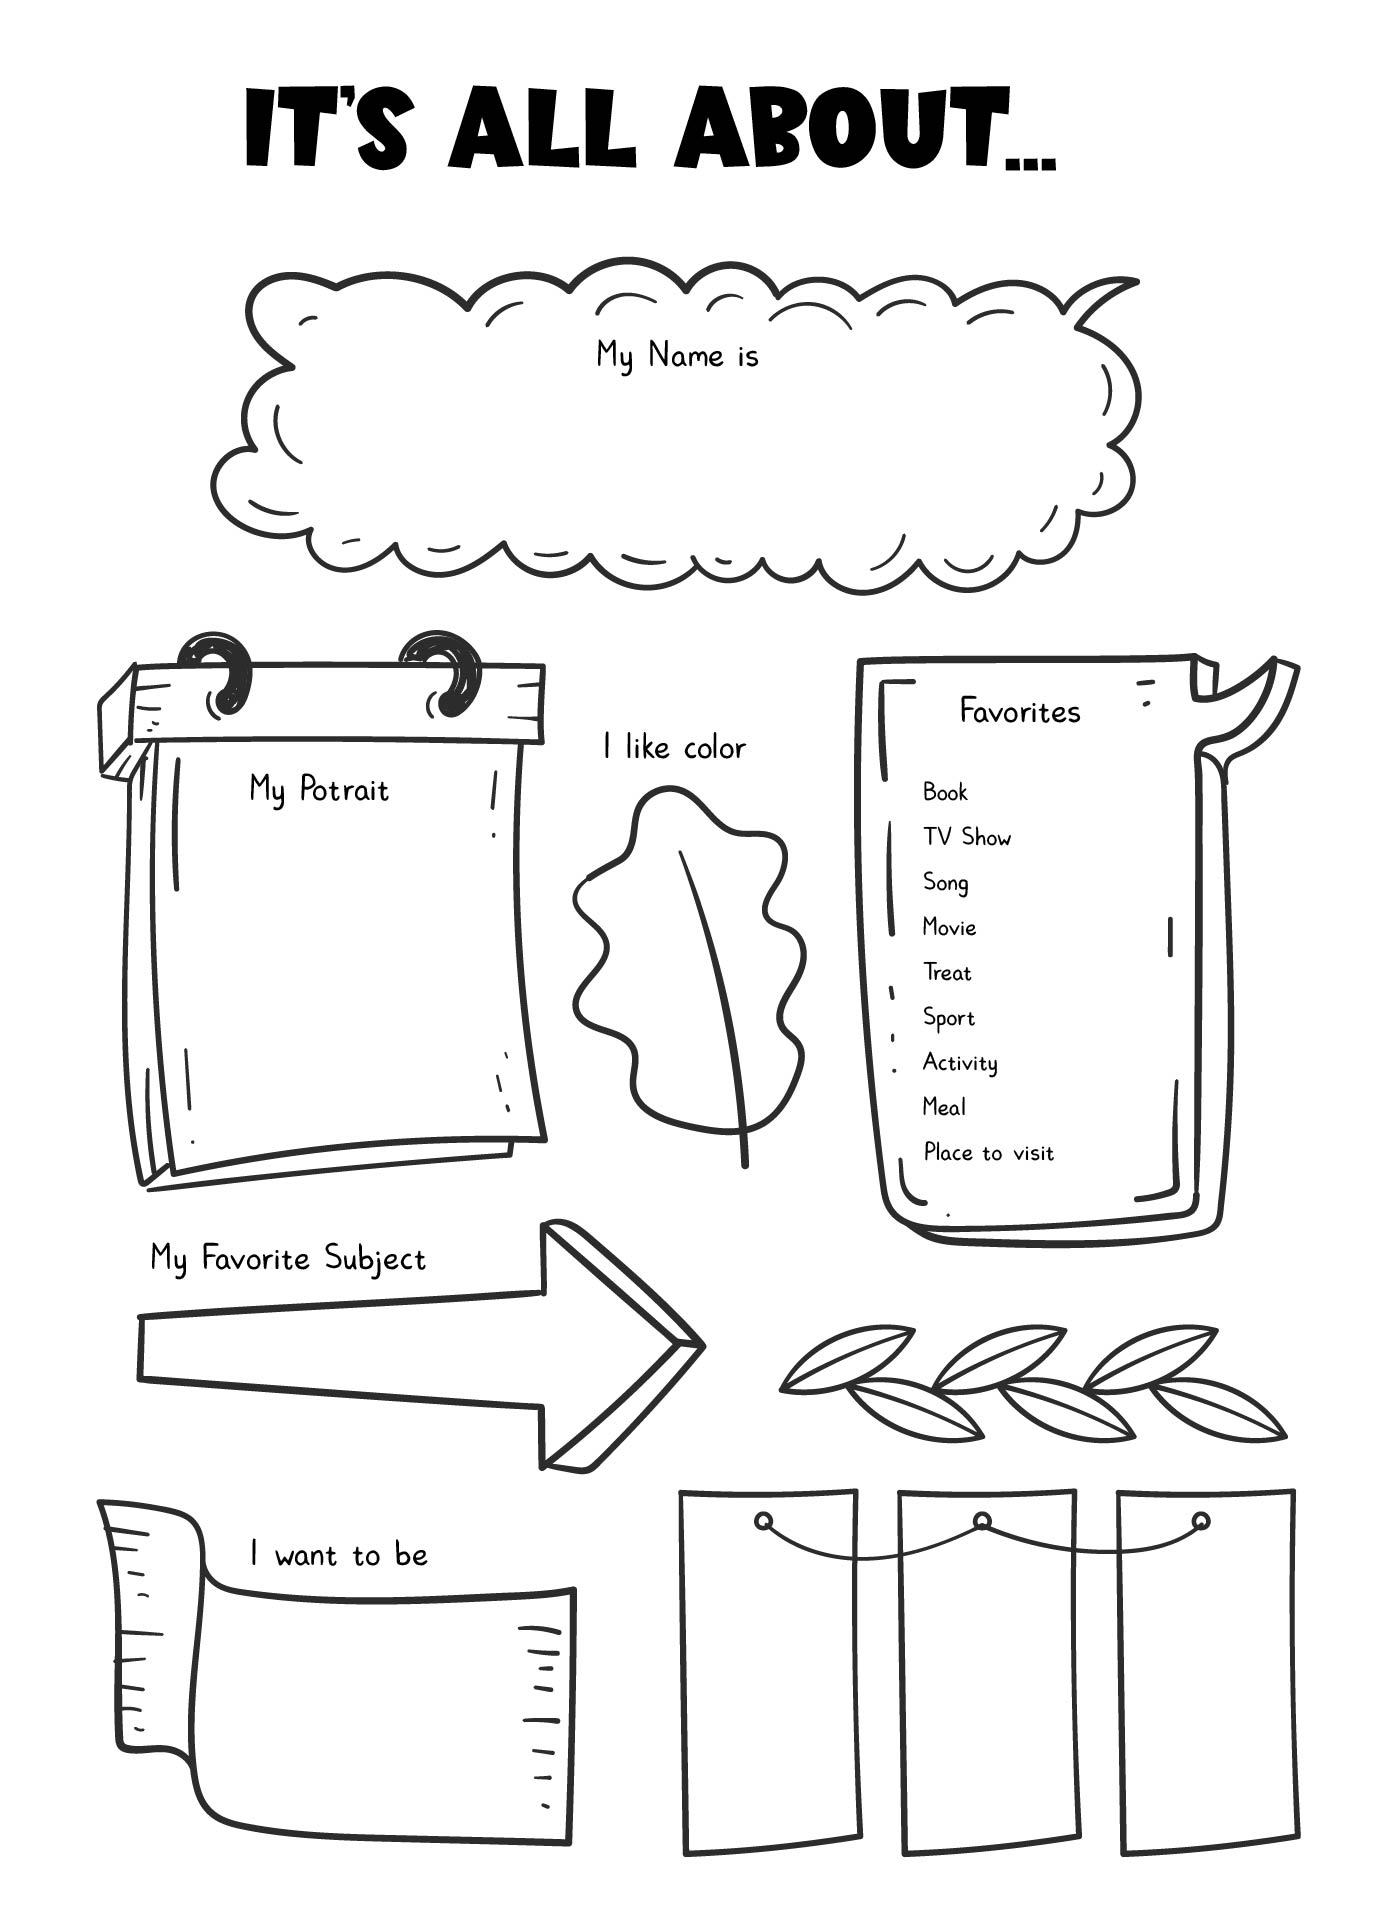 Worksheets About Me Worksheets all about me preschool worksheets fireyourmentor free printable 9 best images of preschool